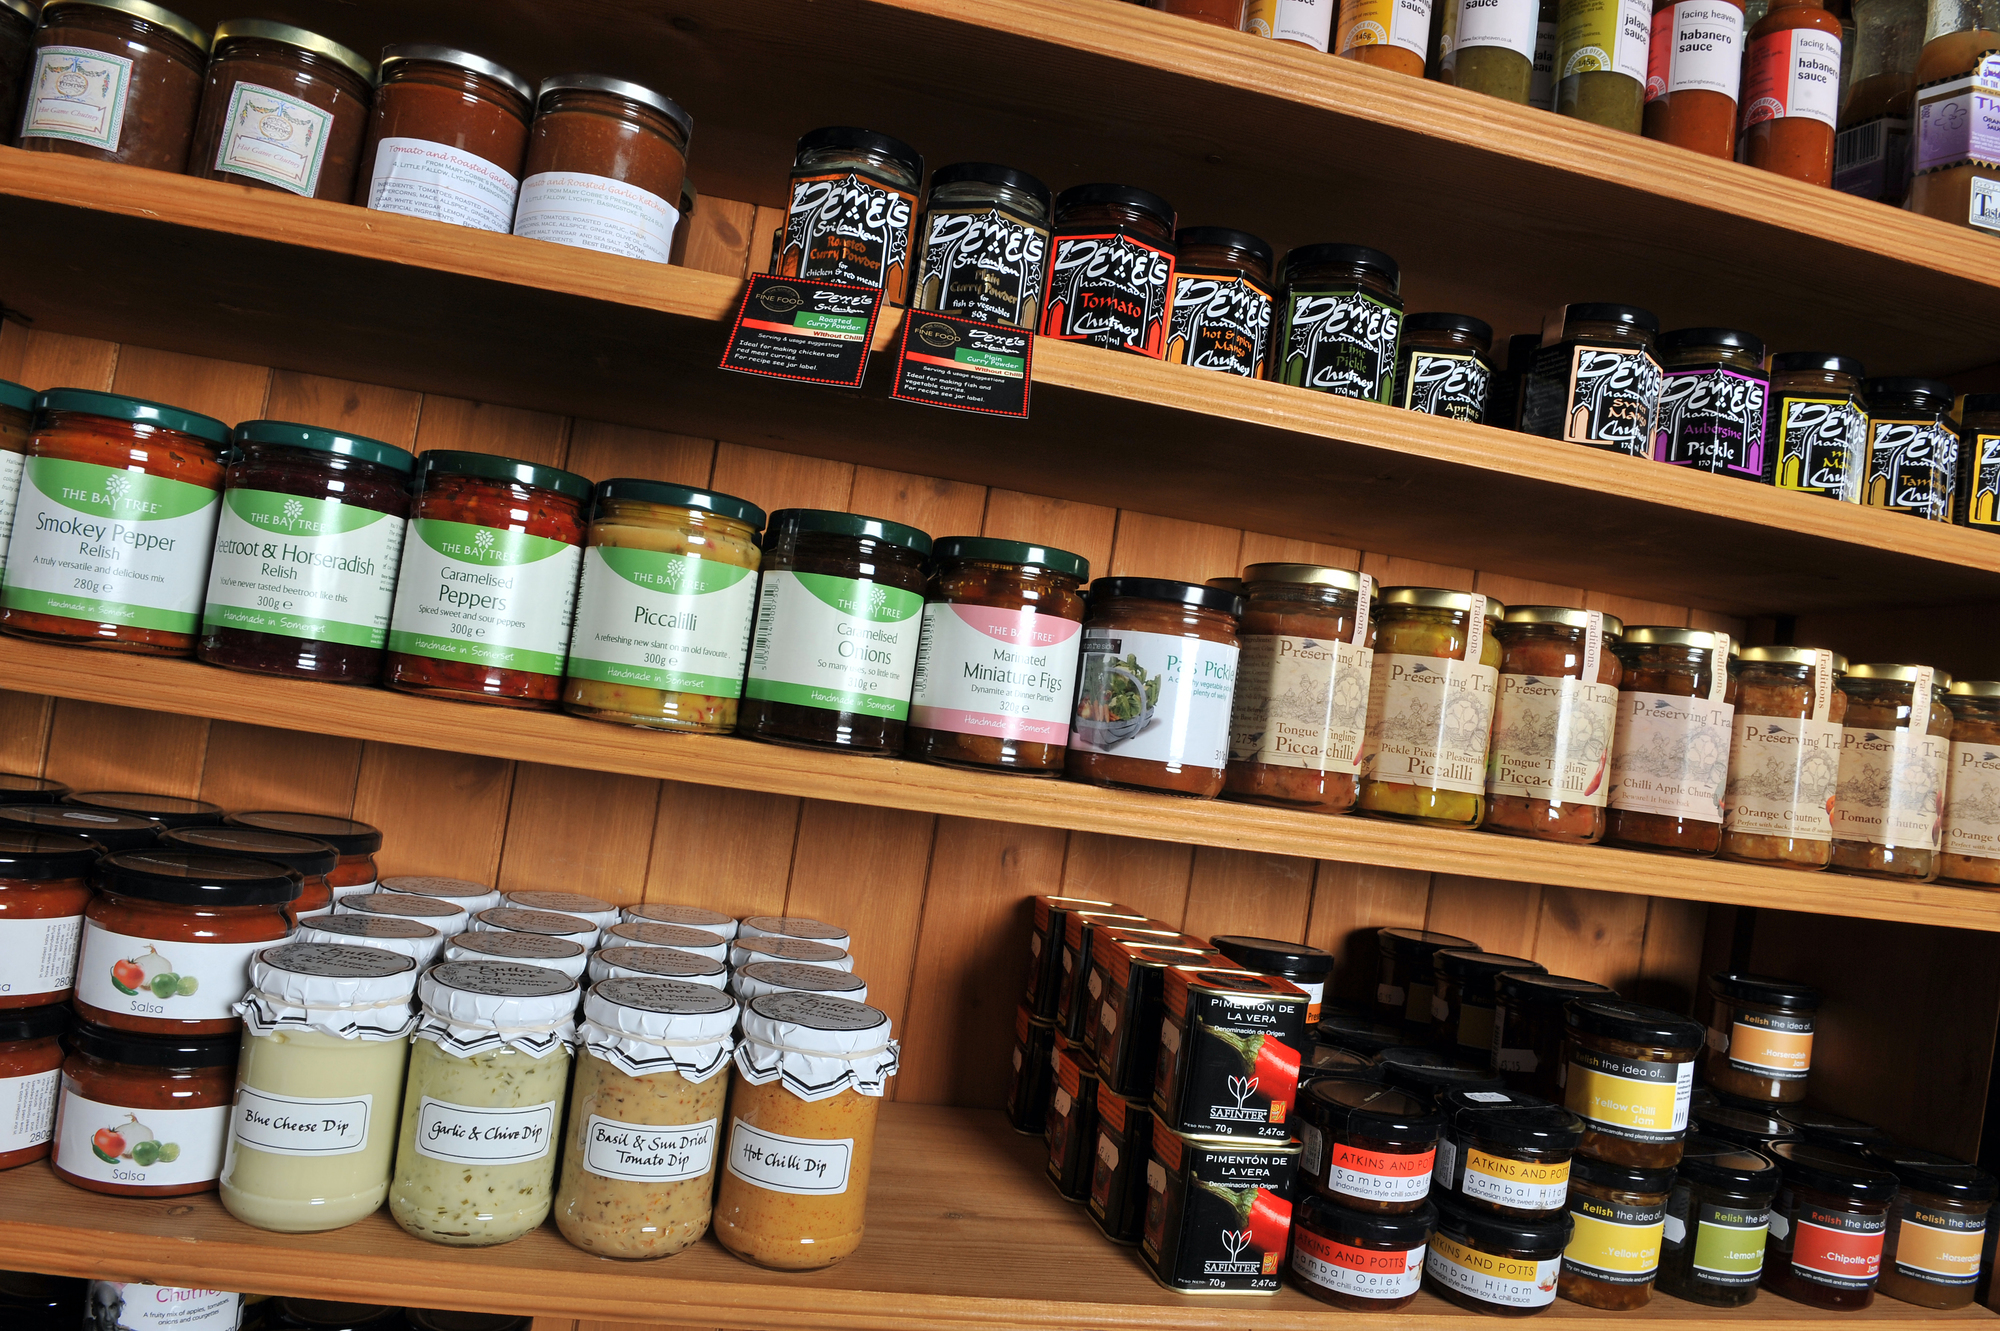 Condiment jars on shelf 2